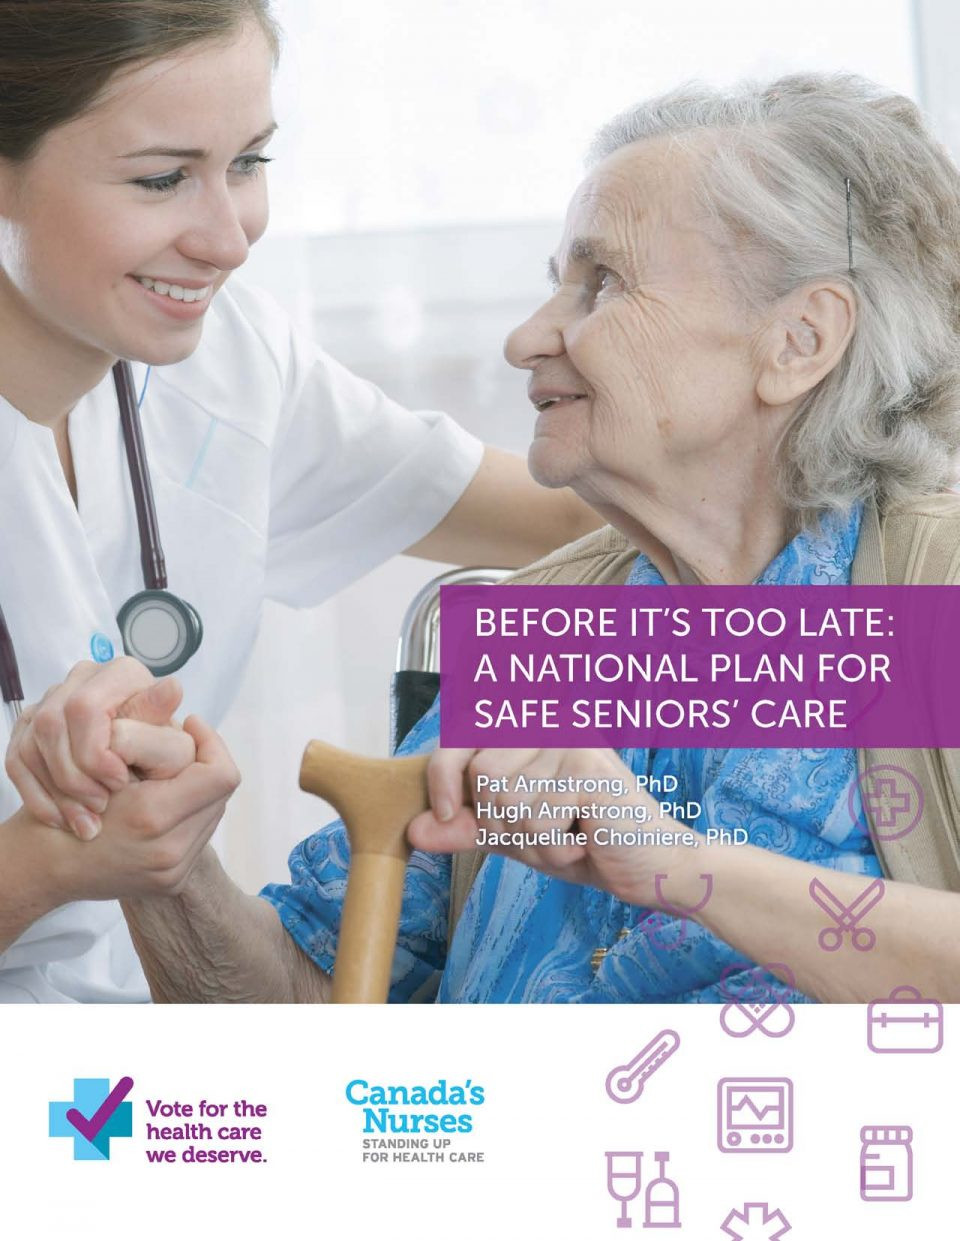 Before It's Too Late: A National Plan for Safe Seniors' Care